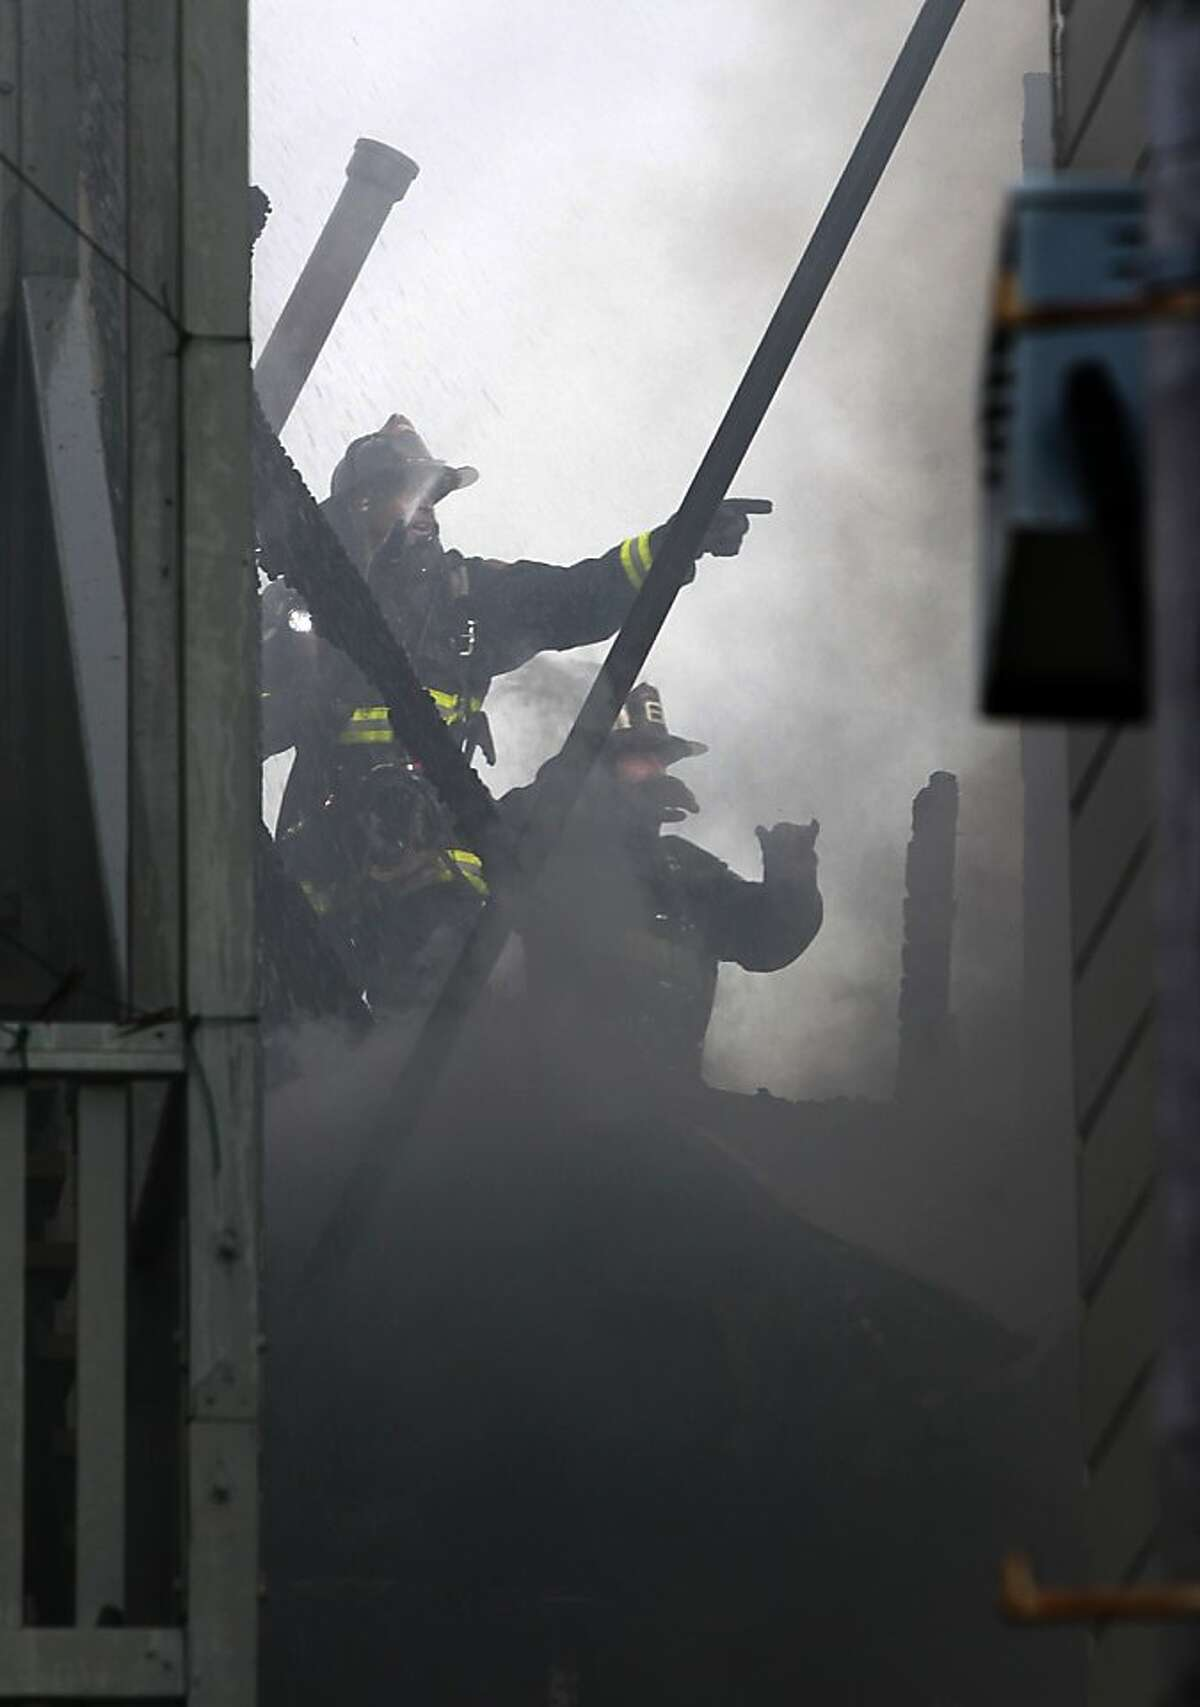 Firefighters work in a narrow space separating several structures while battling a 3-alarm blaze involving five apartment buildings at 23rd and Capp streets in San Francisco, Calif. on Saturday, Dec. 29, 2012. At least one firefighter was injured in the fire.